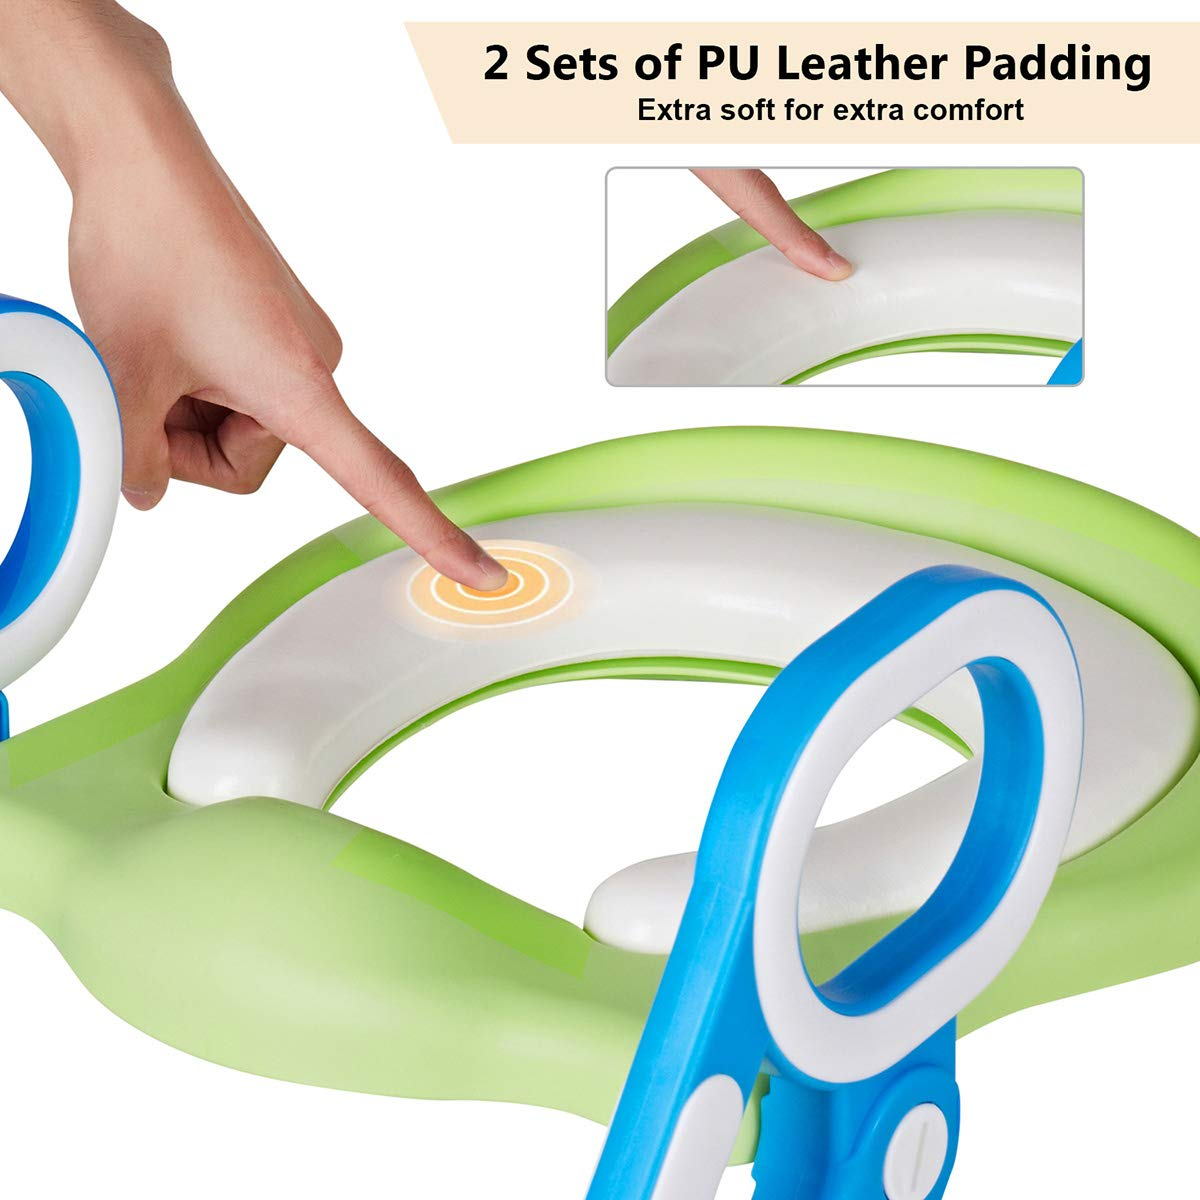 VETOMILE Baby Potty Toilet Trainer Seat for Children Kids Toddles with Adjustable Sturdy Non-Slip Step Stool Ladder and 2 PU Leather Replaceable Soft Padding Suitable for O V U Shaped-Toilets